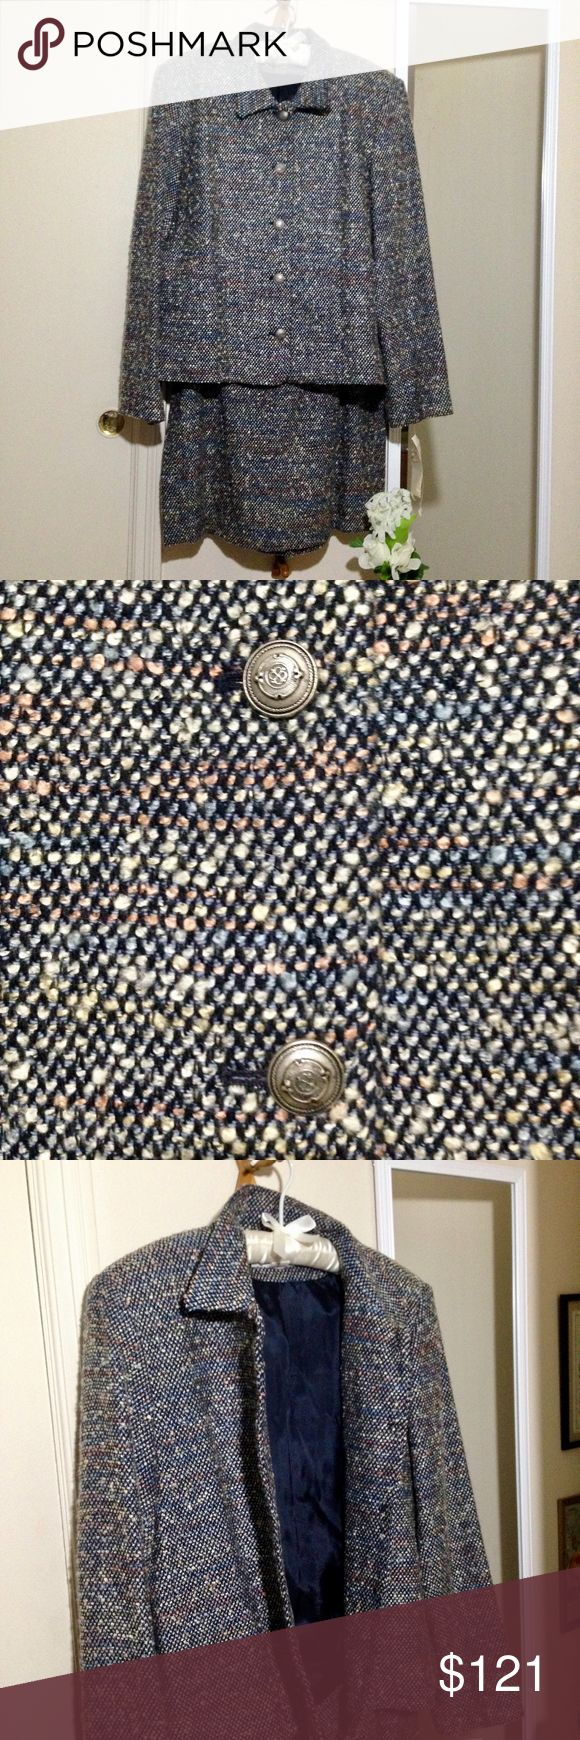 "NEW Tweed Wool Blend Two Piece Skirt Suit 2 piece suit. Blend of dark navy blue, light blue, yellow, cream, light red. Dark navy lining. Wool blend w/ other materials (see pics 4 & 8).   Blazer: SIZE 18. Silver tone metal buttons. Some padding in shoulders. Approx. measurements: bust 22.5""; body length 24""; sleeve length 25.25"".  Pencil skirt: SIZE 16. Partial zip down back. Back slit (pic 7). Approx, measurements: waist: 16.75""; length 23.5"".   Both perfect condition. Brand new with tags…"